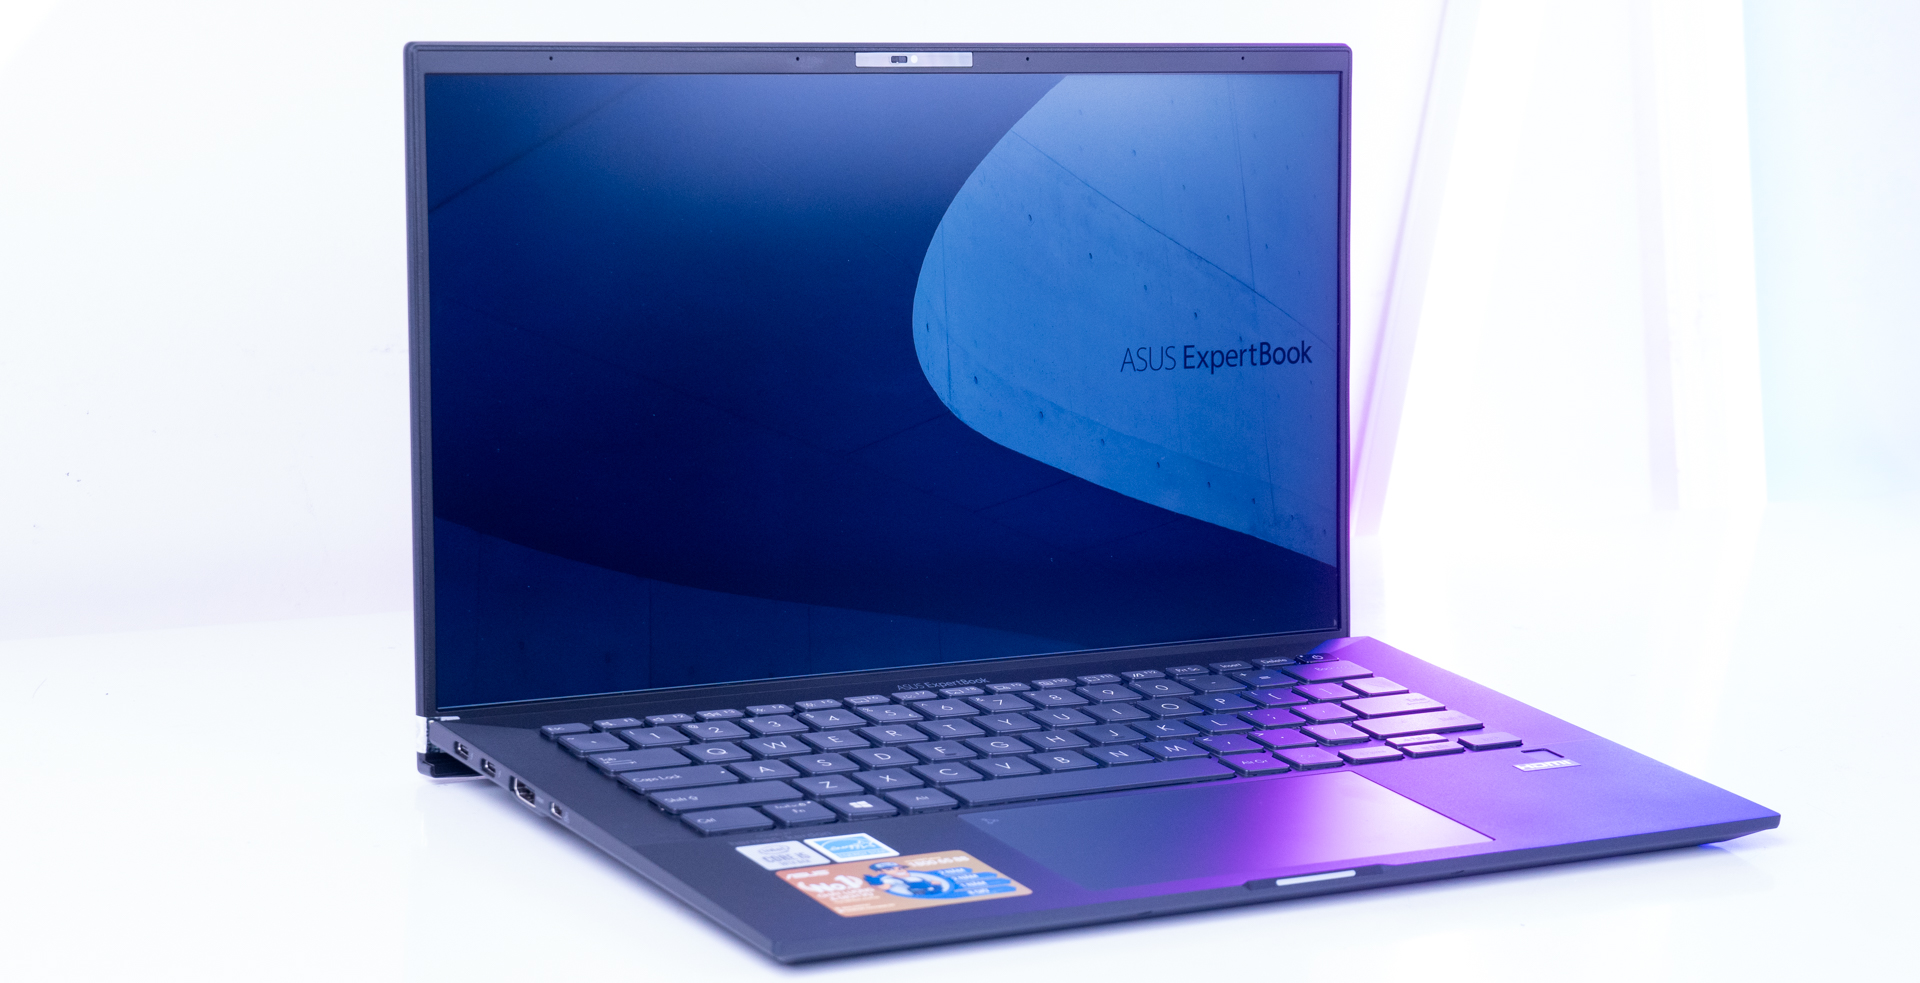 [REVIEW] ASUS EXPERTBOOK B9450FA – CHIẾC LAPTOP 14 INCH MỎNG NHẸ NHẤT THẾ GIỚI